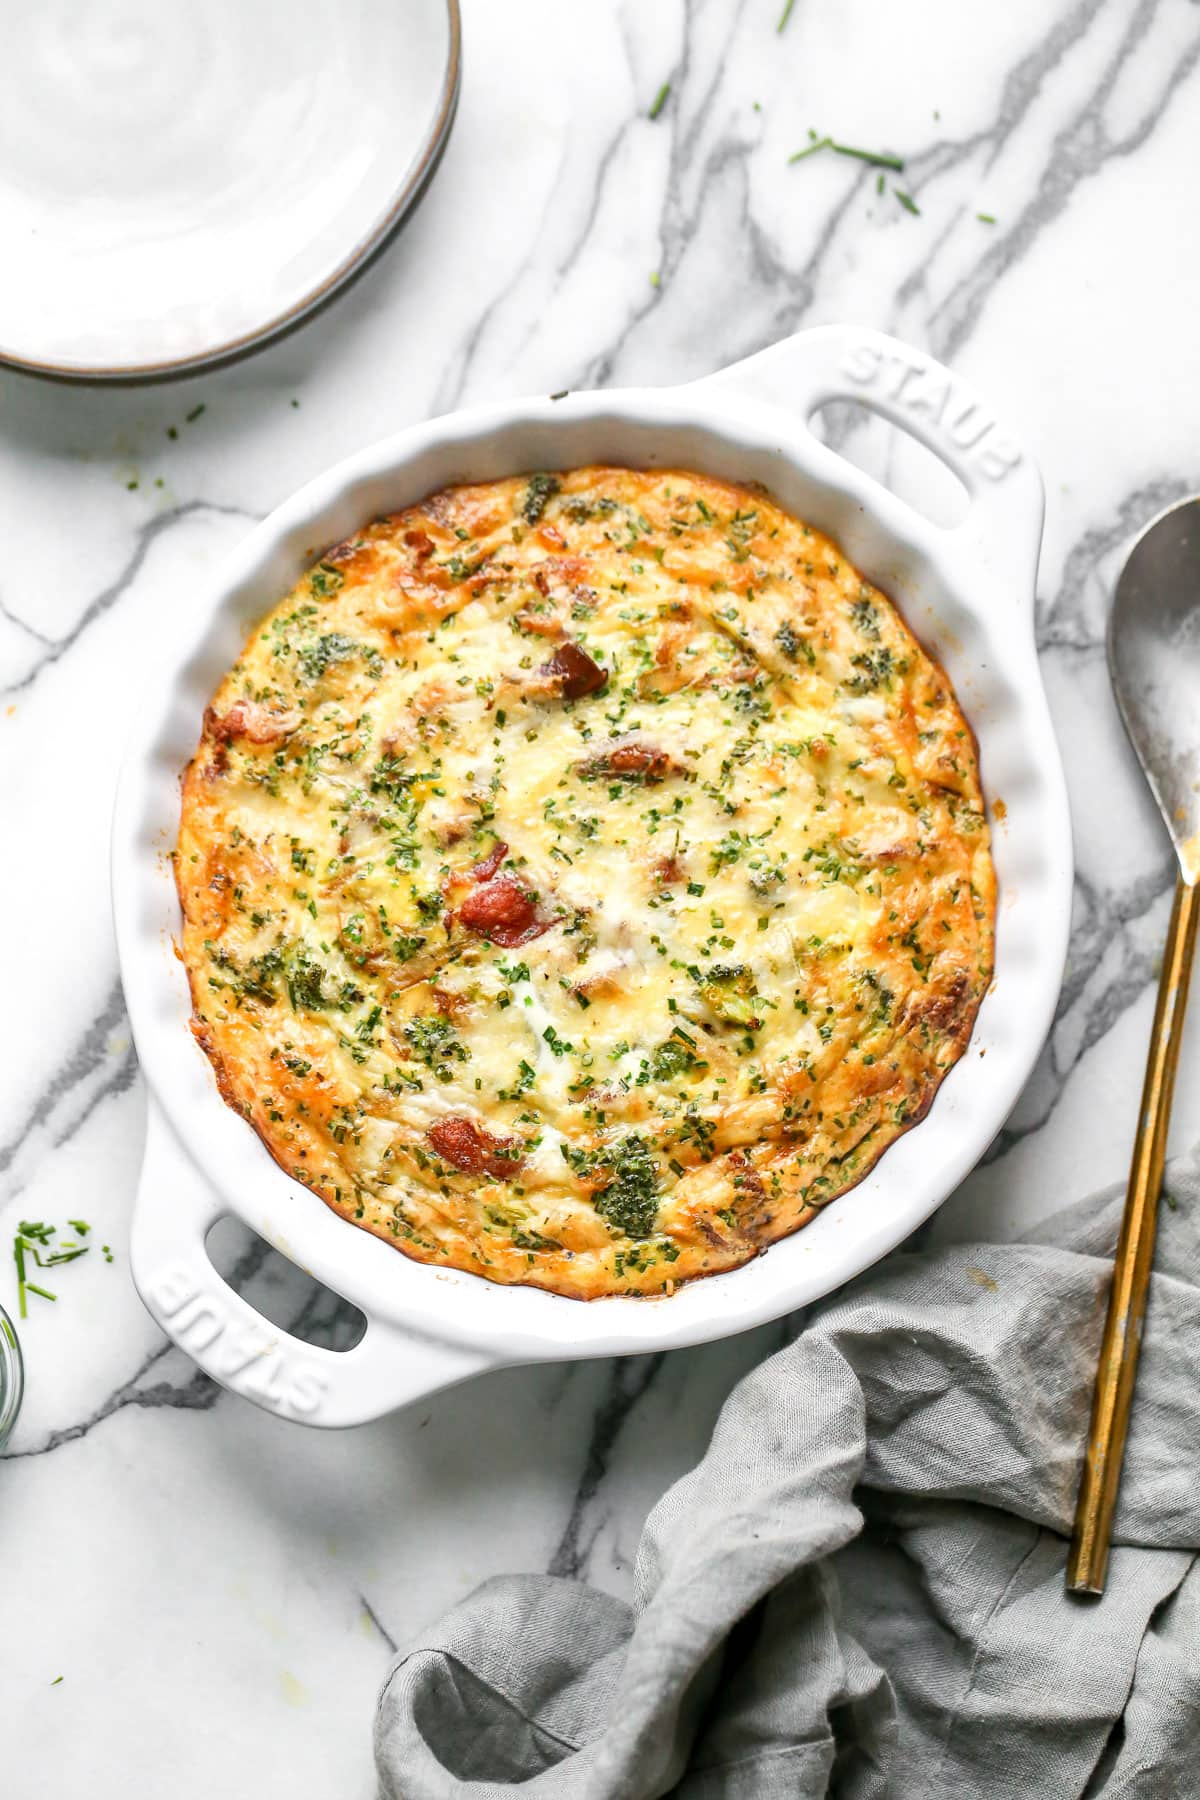 Crustless quiche with bacon and vegetables